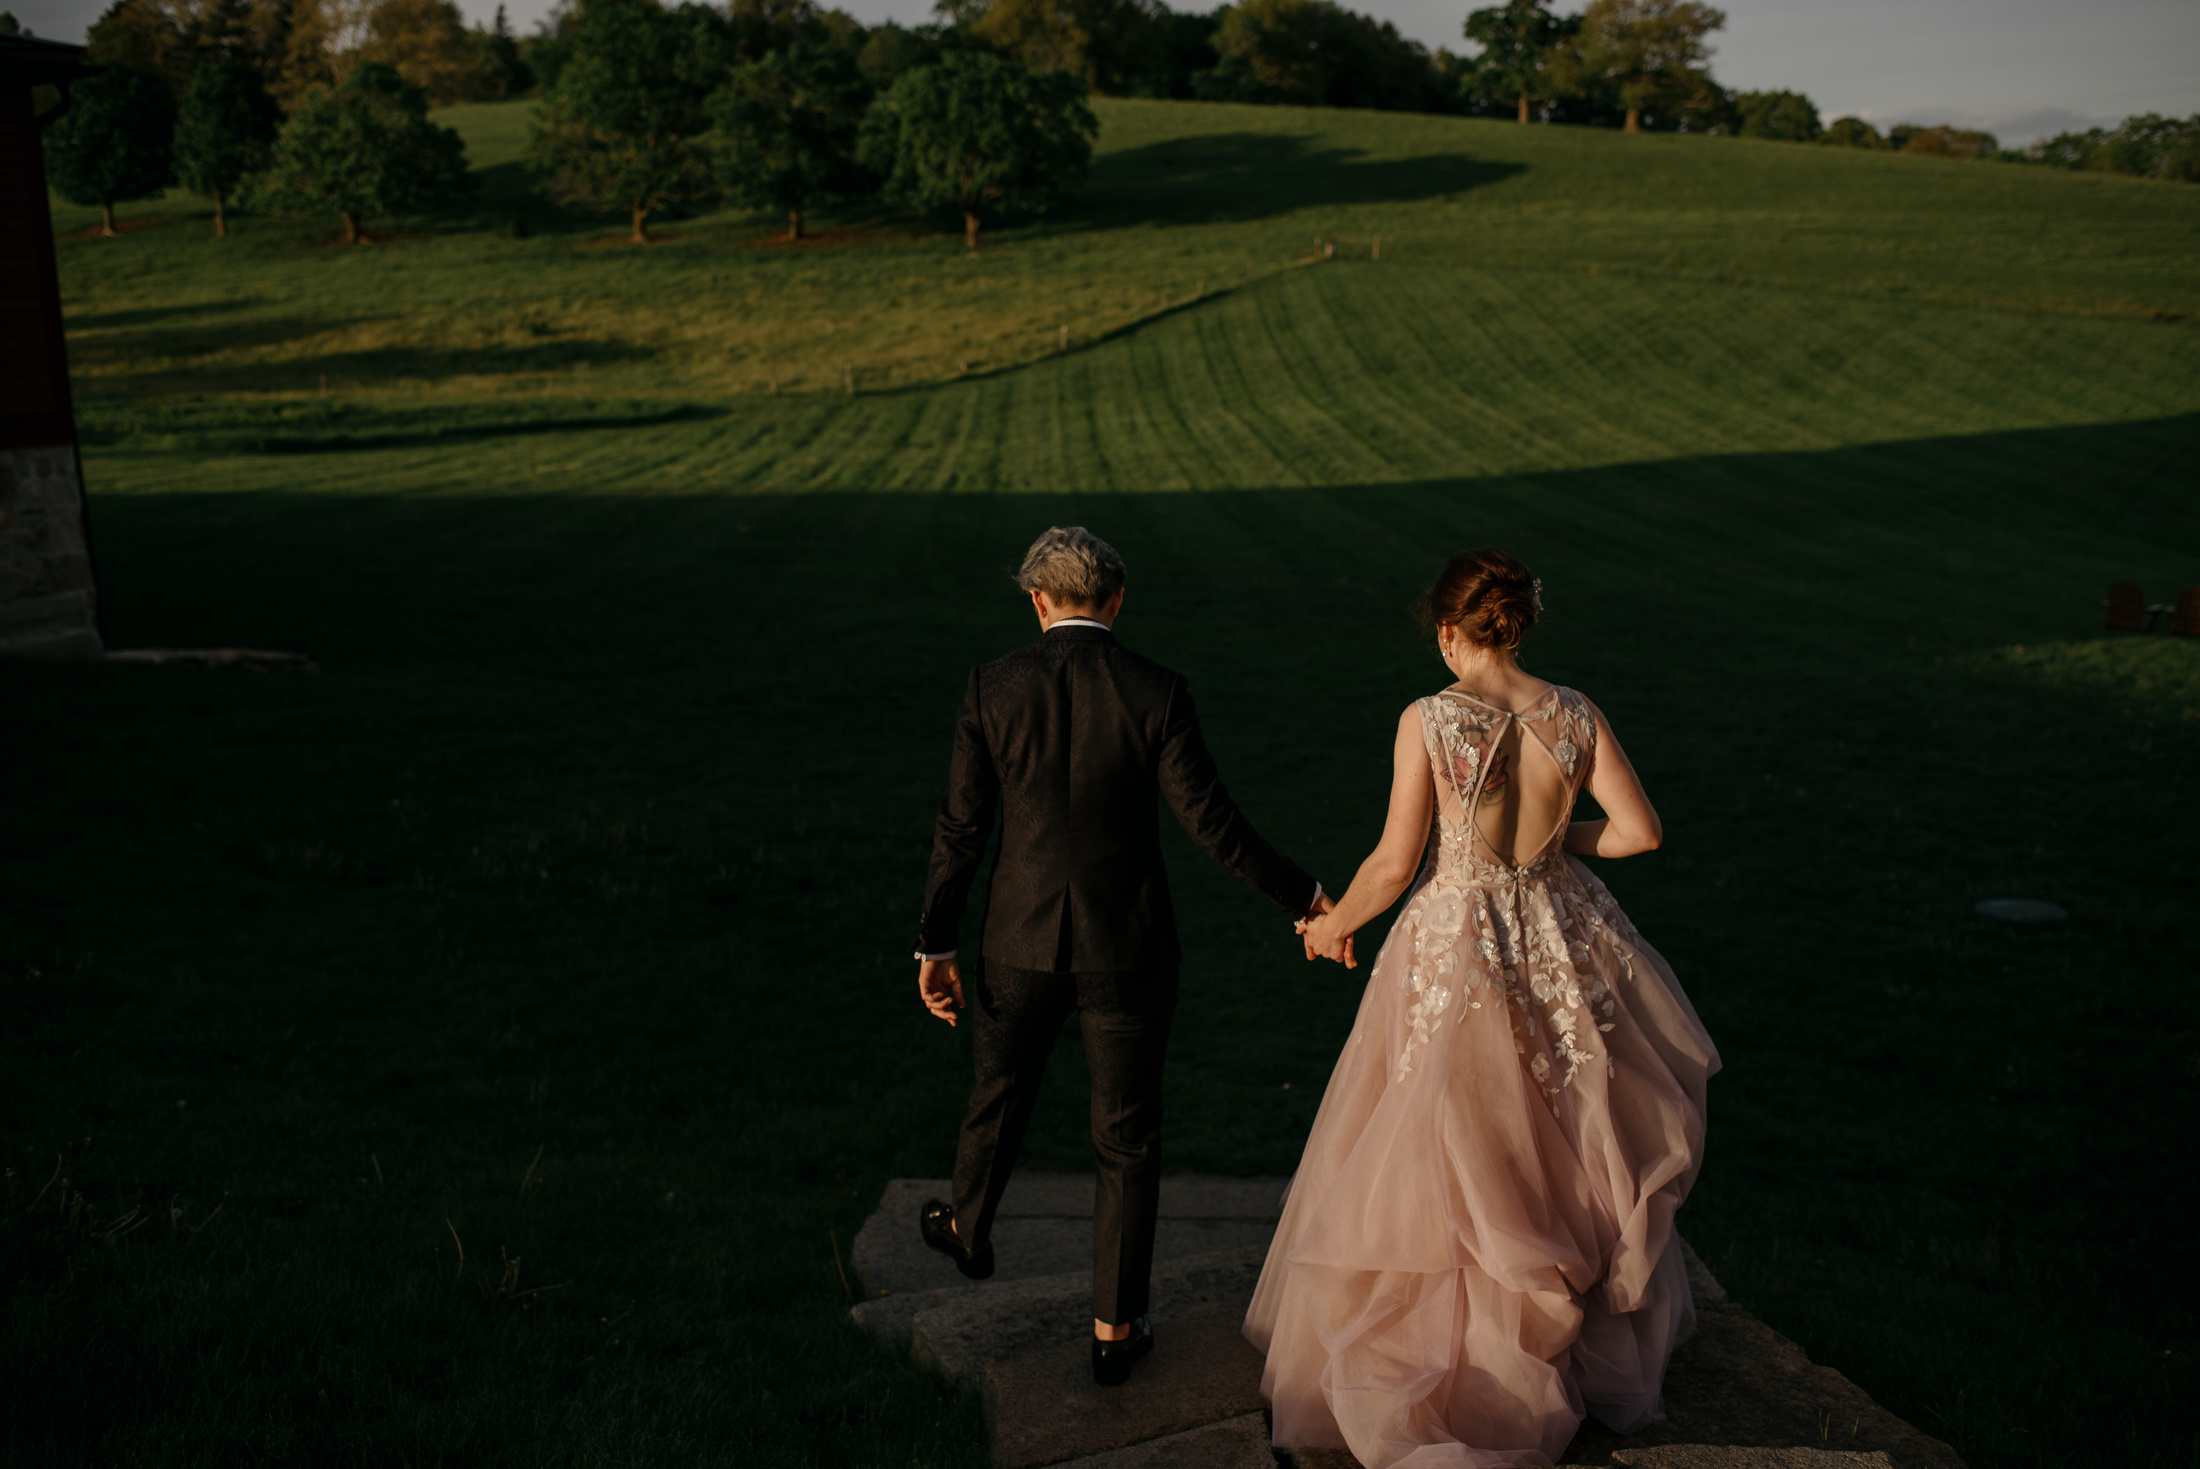 vogue style editorial wedding with same sex couple in a new england private wedding